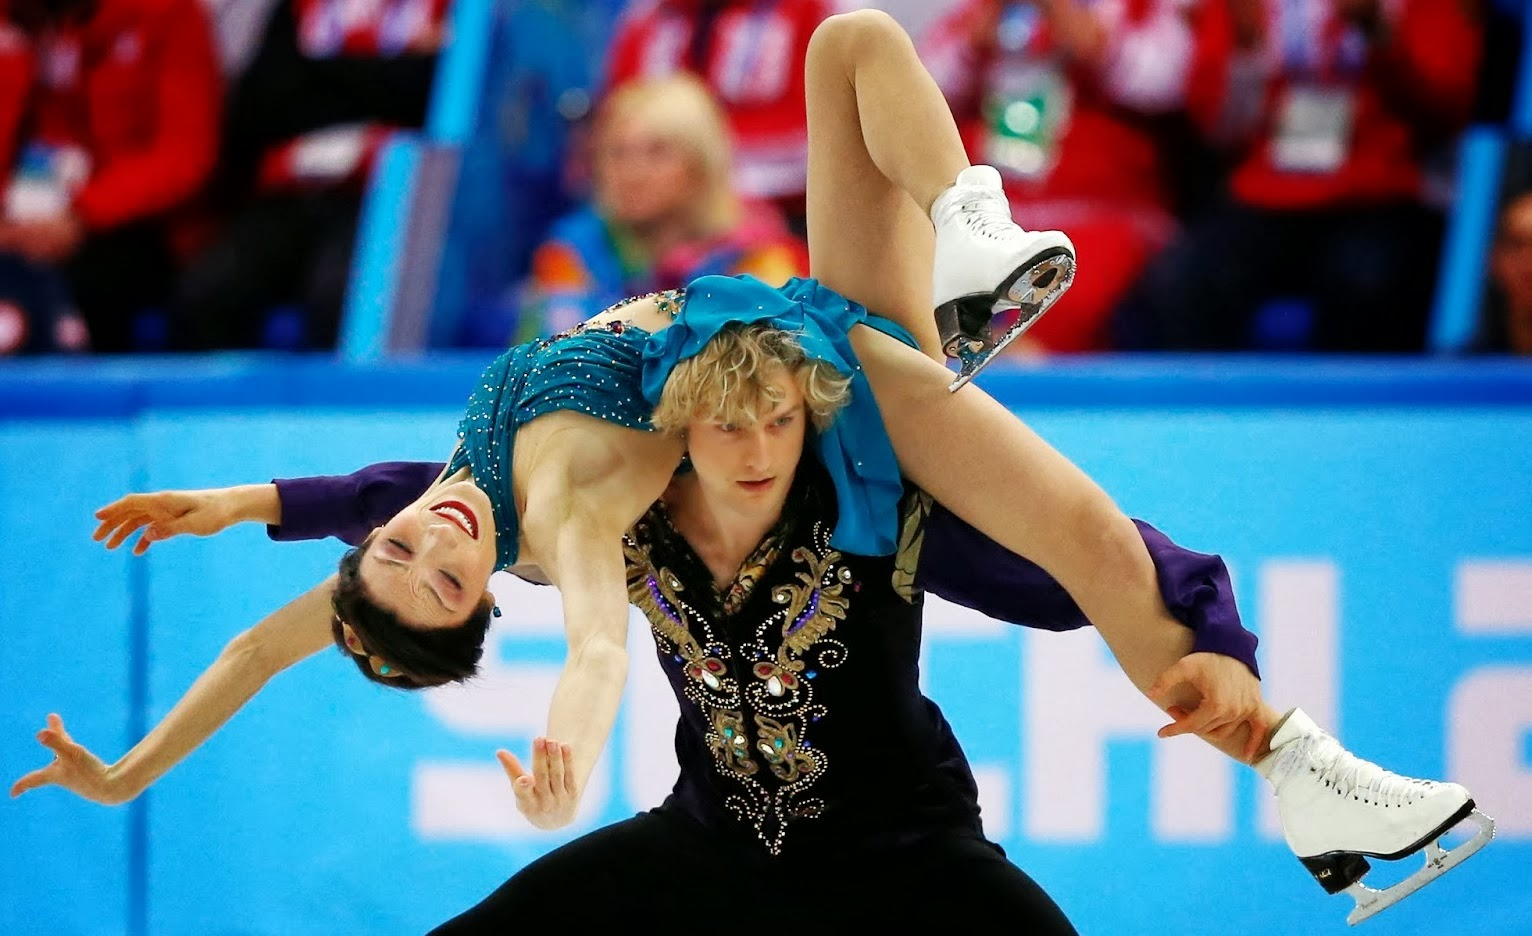 arabian nights,ice skating,olympics 2014